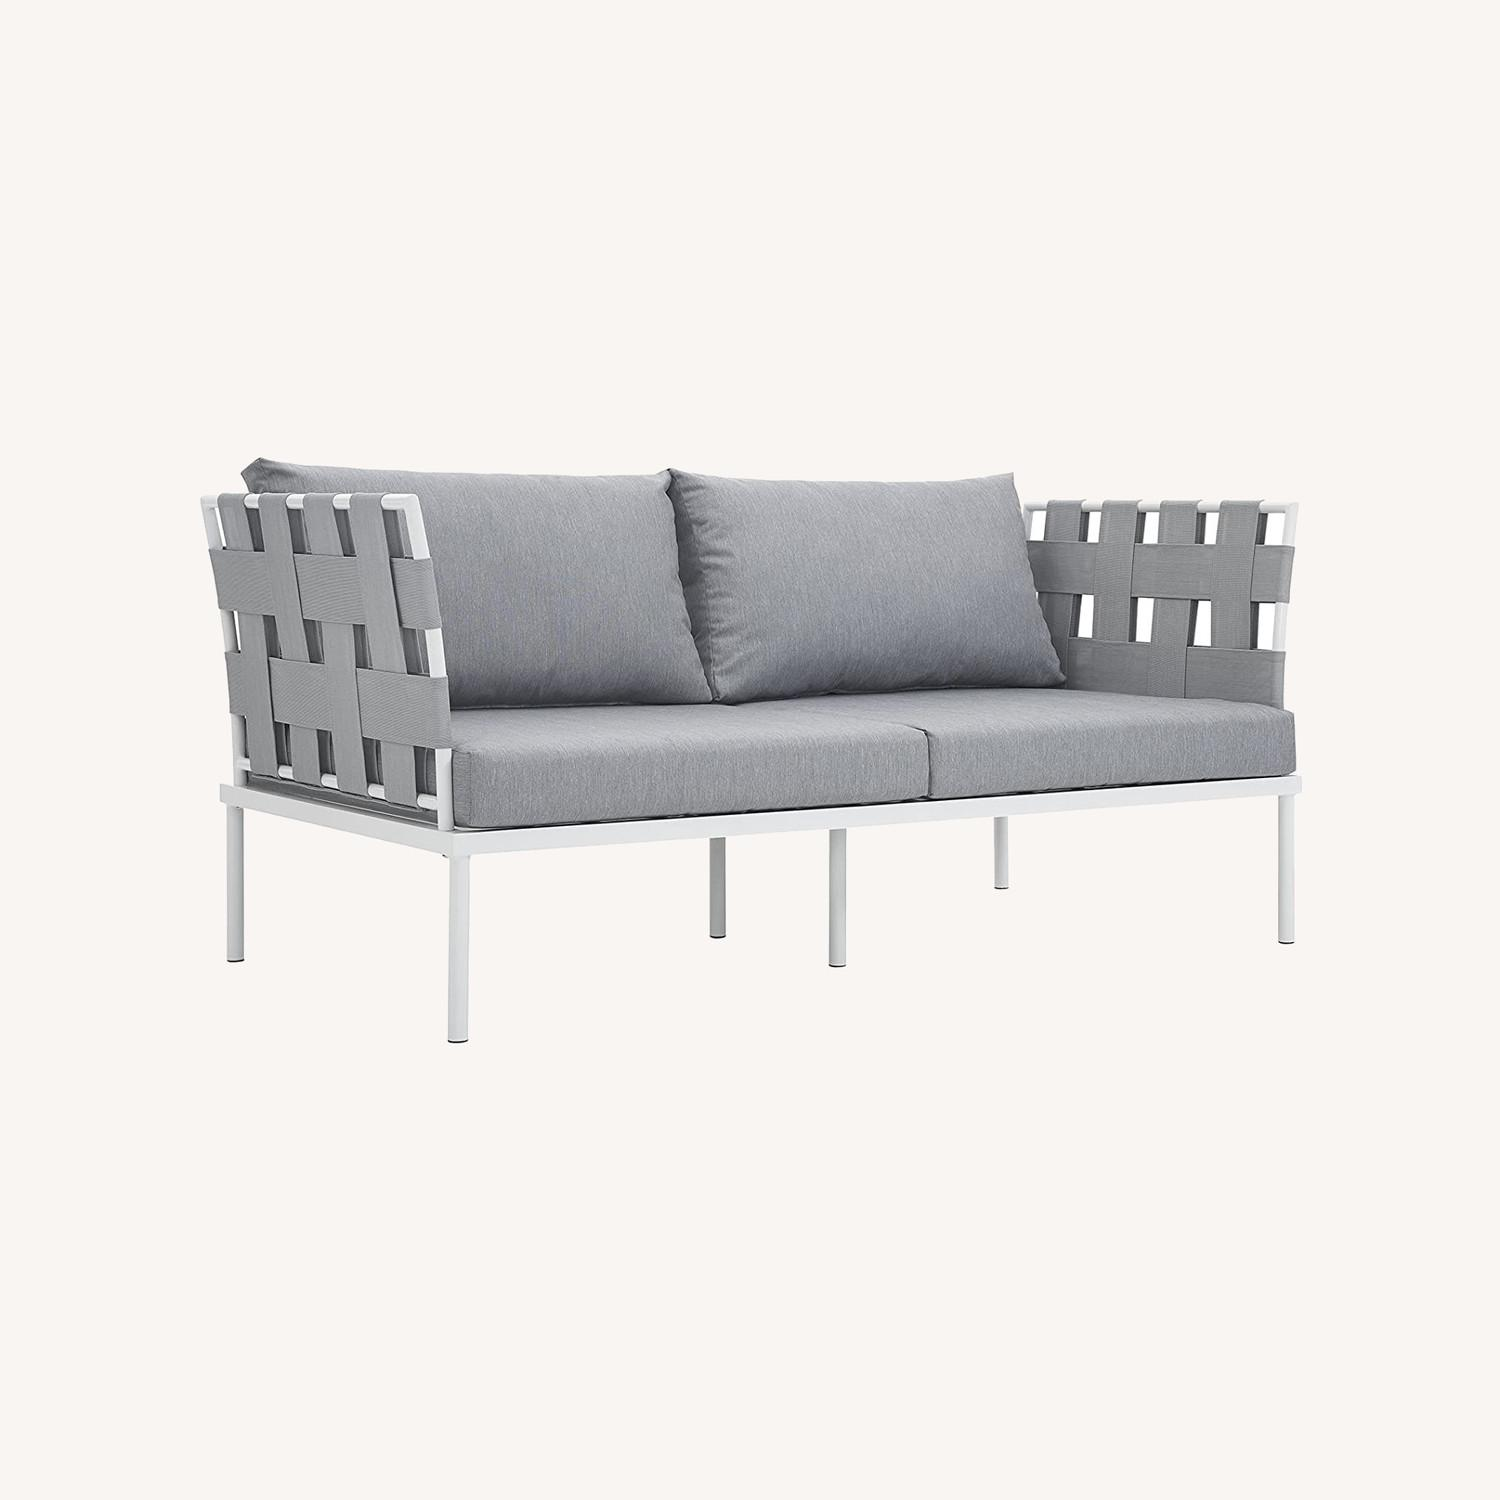 Outdoor Loveseat In Gray Silk Polyester Weave - image-6